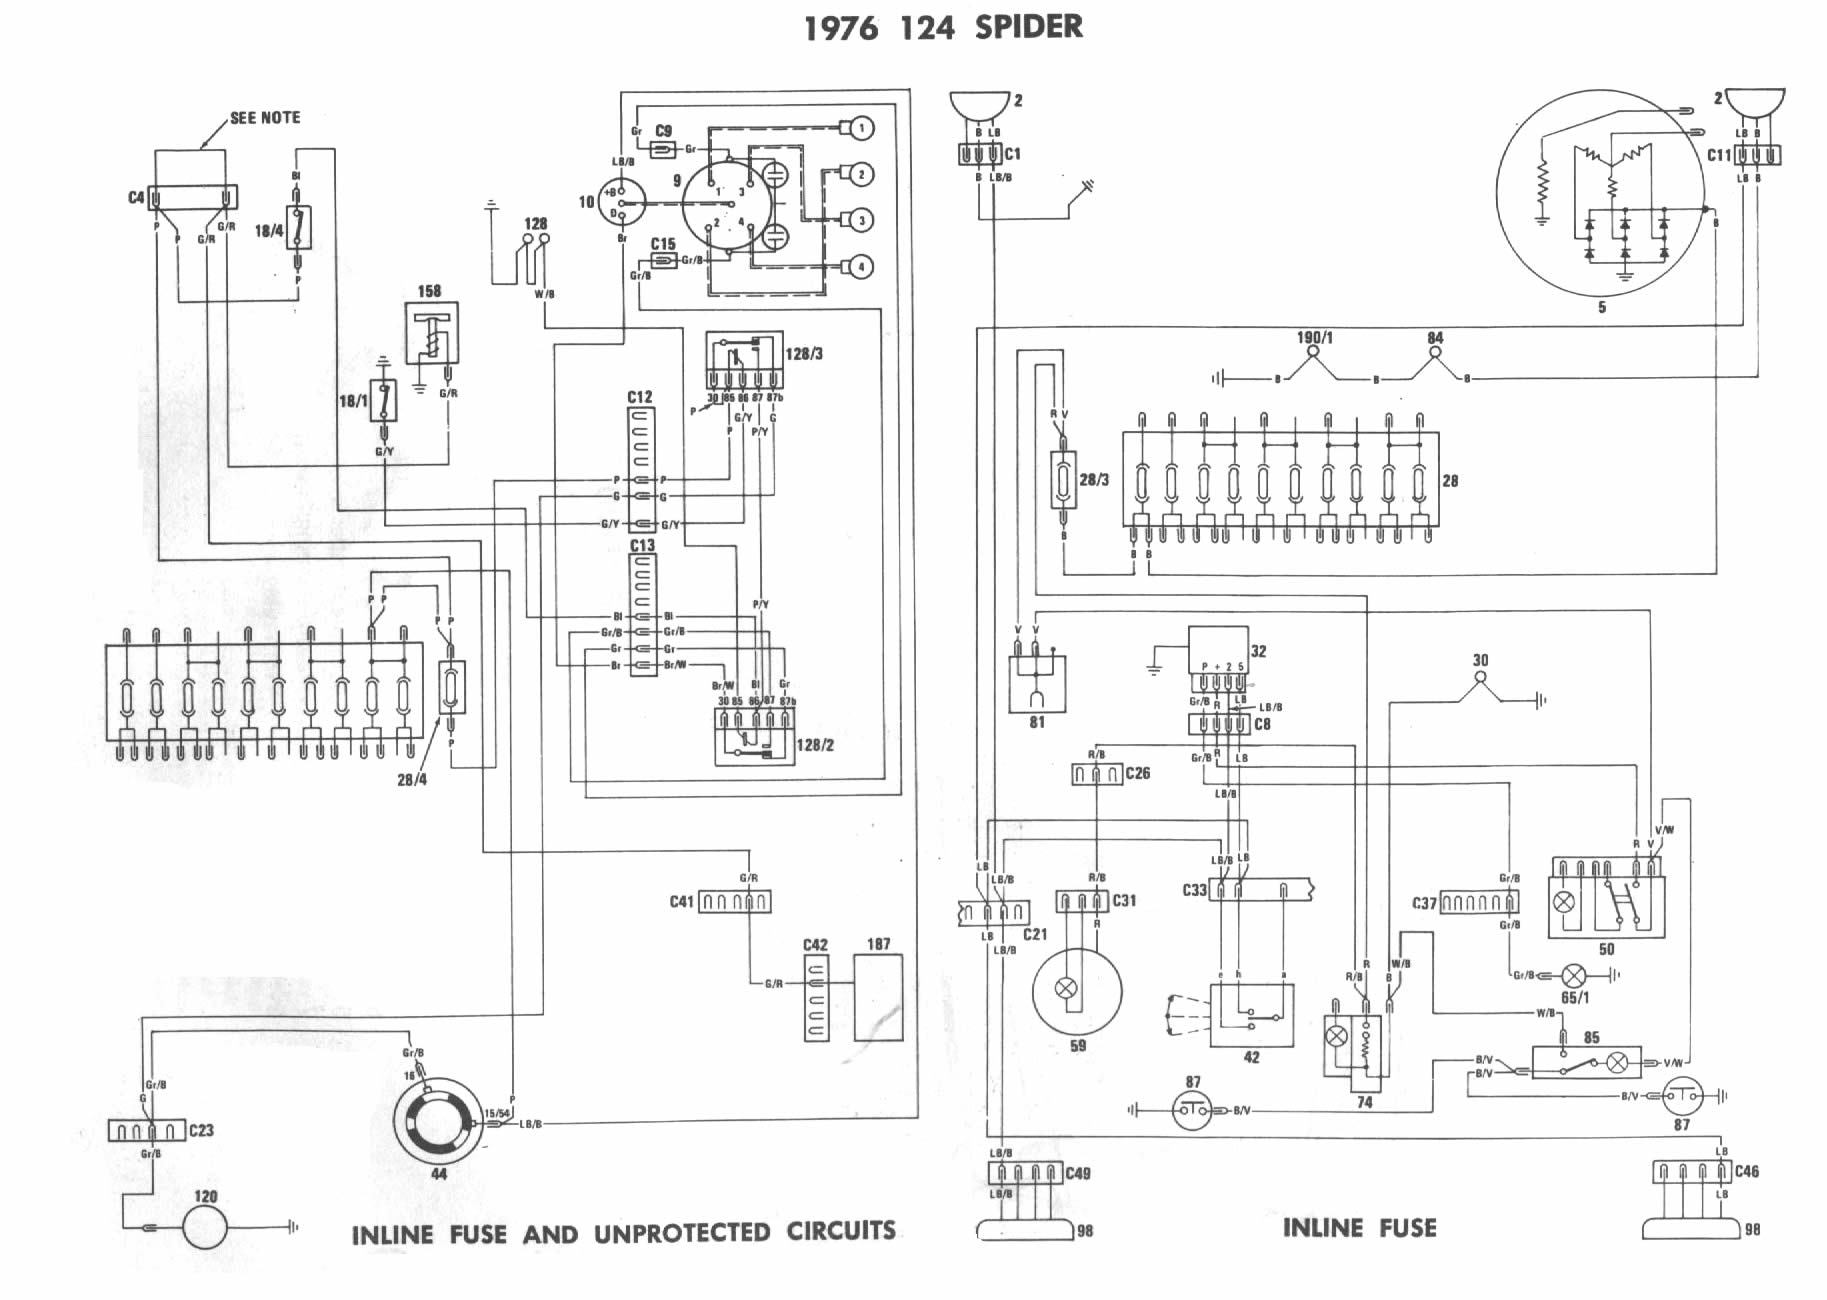 john deere ignition switch diagram mercury outboard motor 25ml sn op 1976 fiat spider wiring diagrams